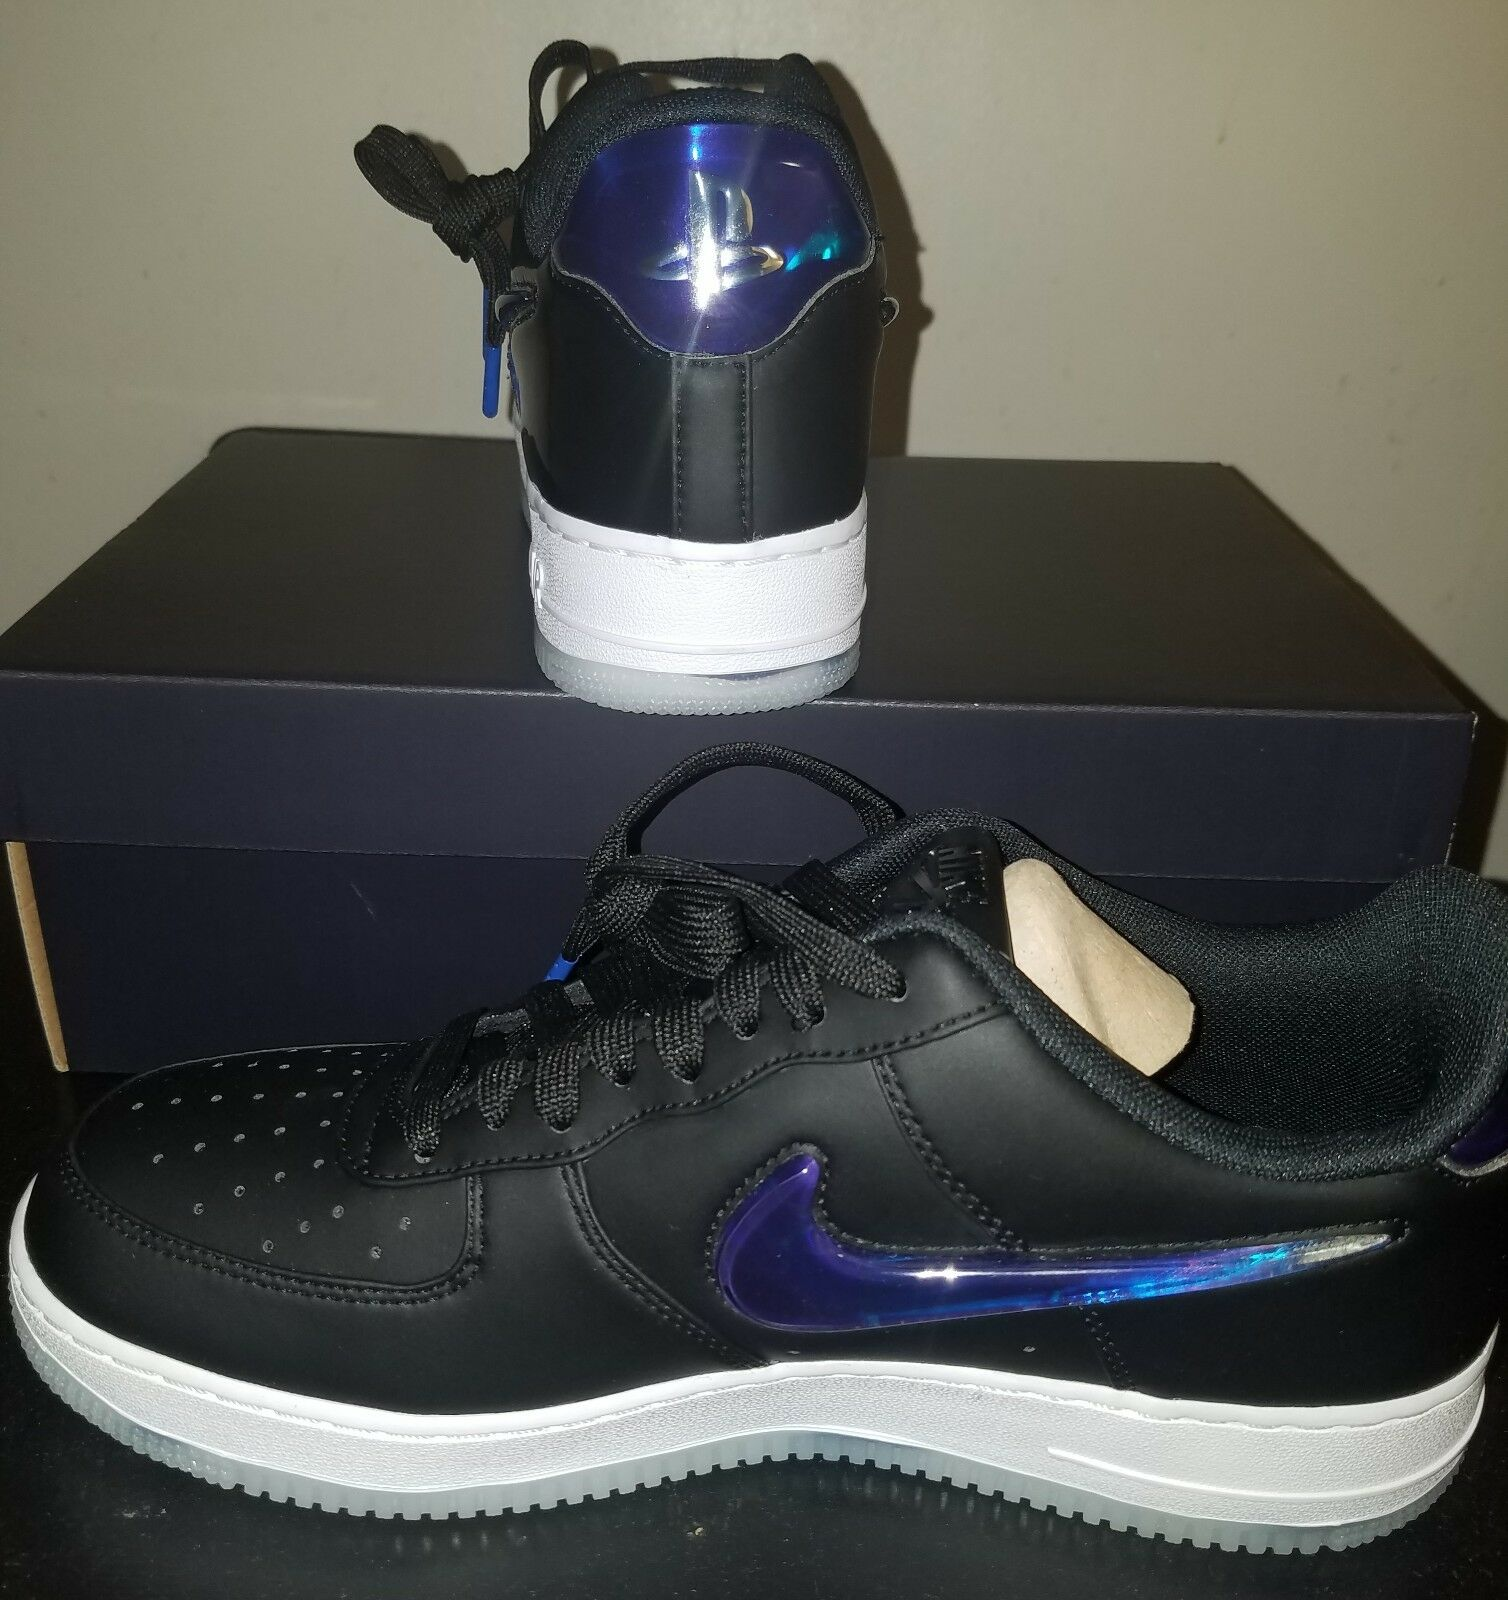 Nike Air Force 1 Playstation '18-SIZE 8.5 E3 2018 100% Authentic + E3 BONUS